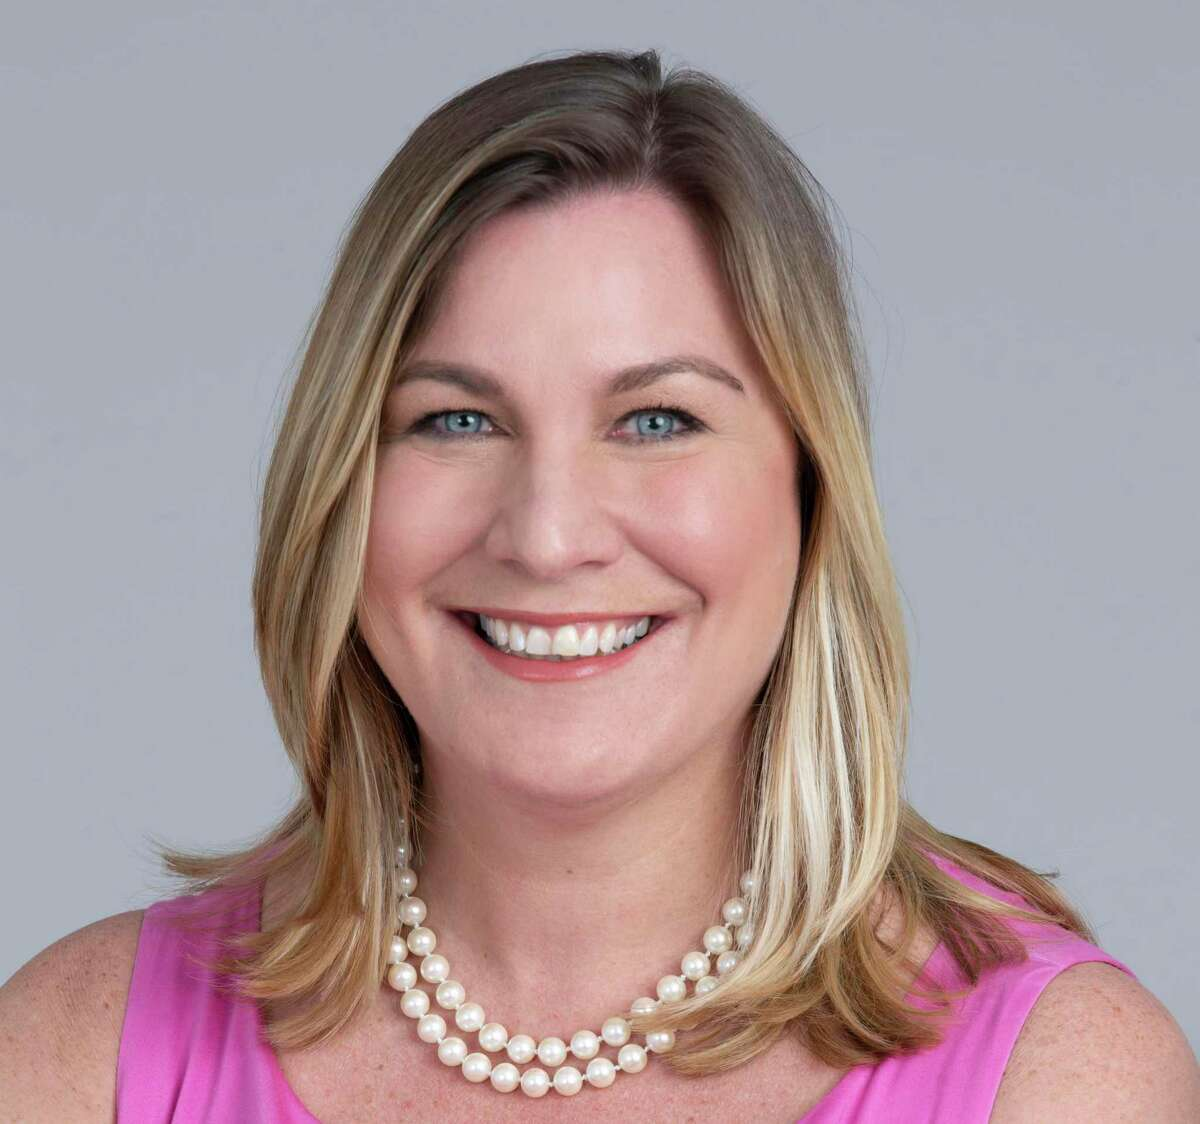 The American Red Cross Metro New York North Chapter recently welcomed Stephanie Dunn Ashley as their new CEO. Dunn Ashley will oversee the Red Cross in Westchester County, Rockland County, Greenwich Conn.; and West Point, N.Y.